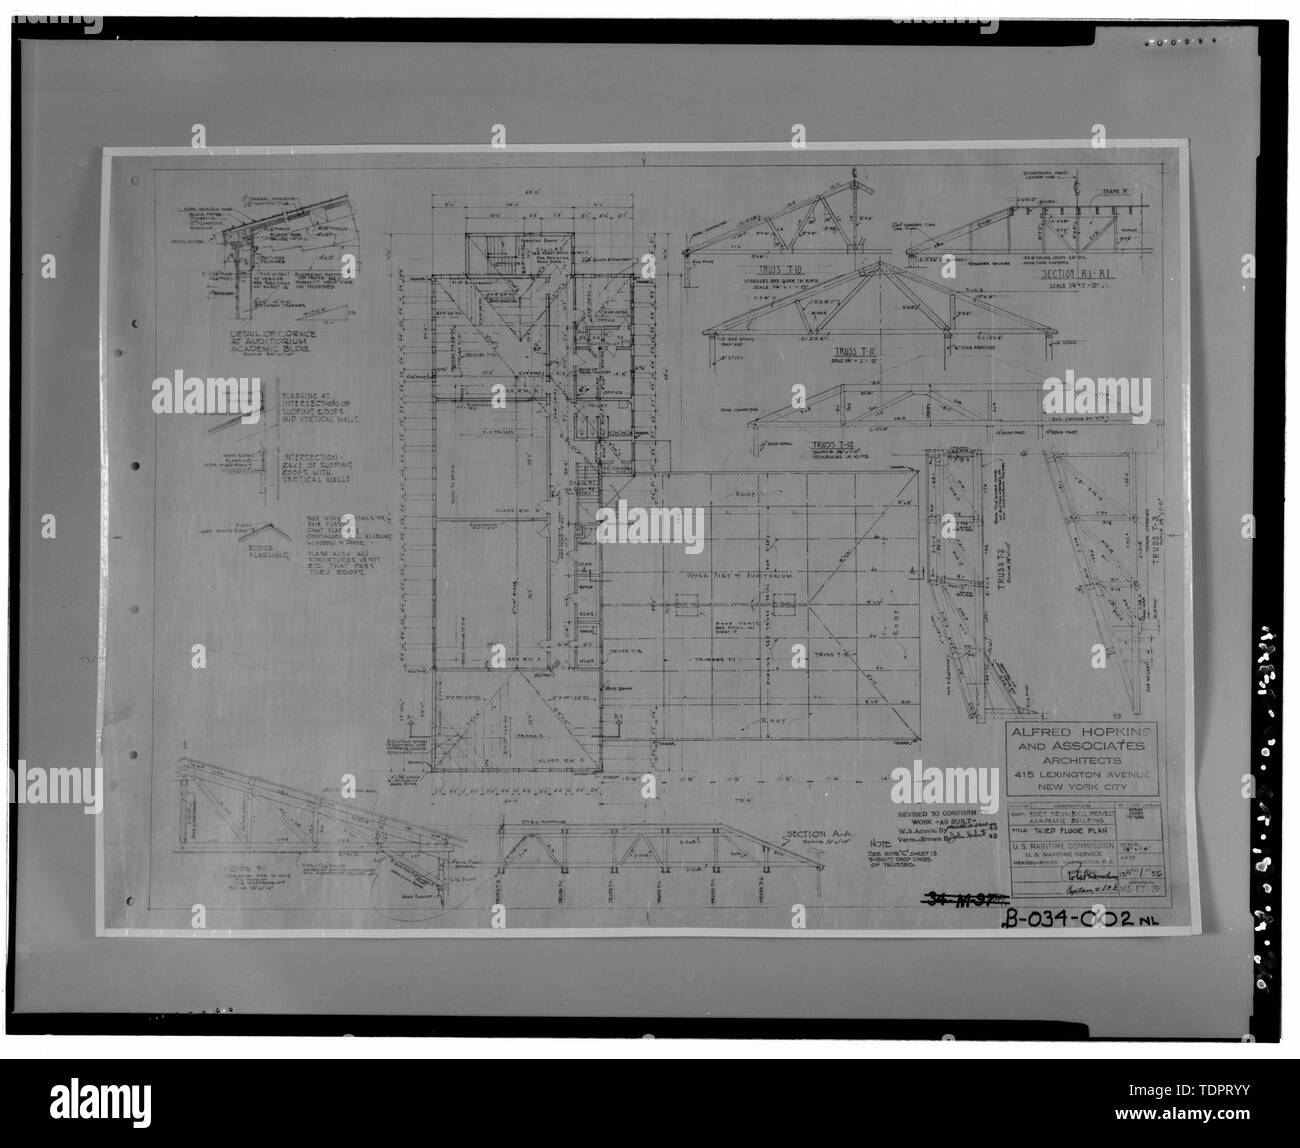 Photographic copy of third floor plan of Bowditch Hall, Alfred Hopkins and Associates, 1943. Drawing on file at Caretaker Site Office, Naval Undersea Warfare Center, New London. Copyright-free. - Naval Undersea Warfare Center, Bowditch Hall, 600 feet east of Smith Street and 350 feet south of Columbia Cove, West bank of Thames River, New London, New London County, CT - Stock Image